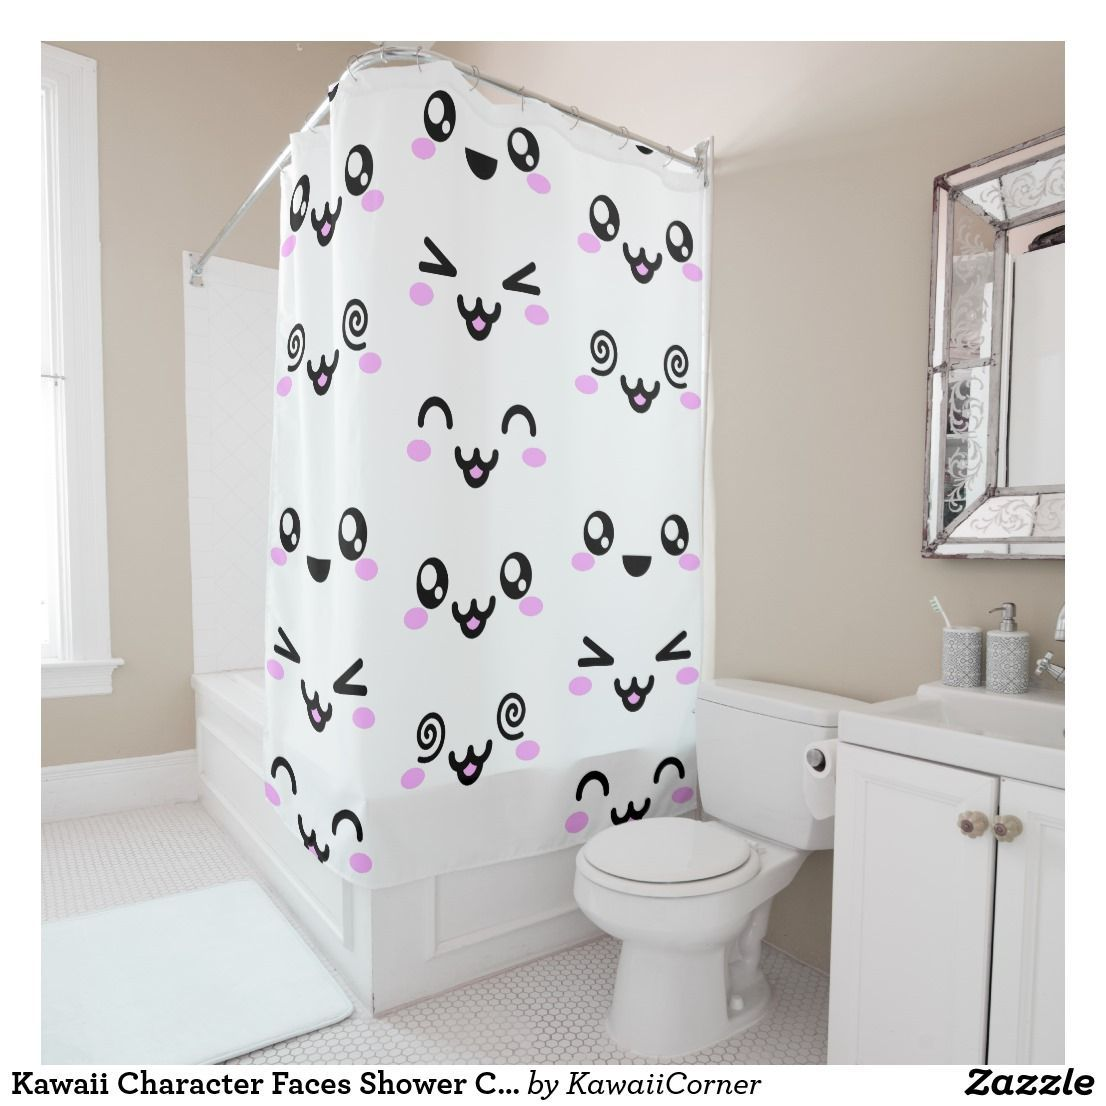 Th E Cutest Shower Curtain Ever Kawaii Character Faces Shower